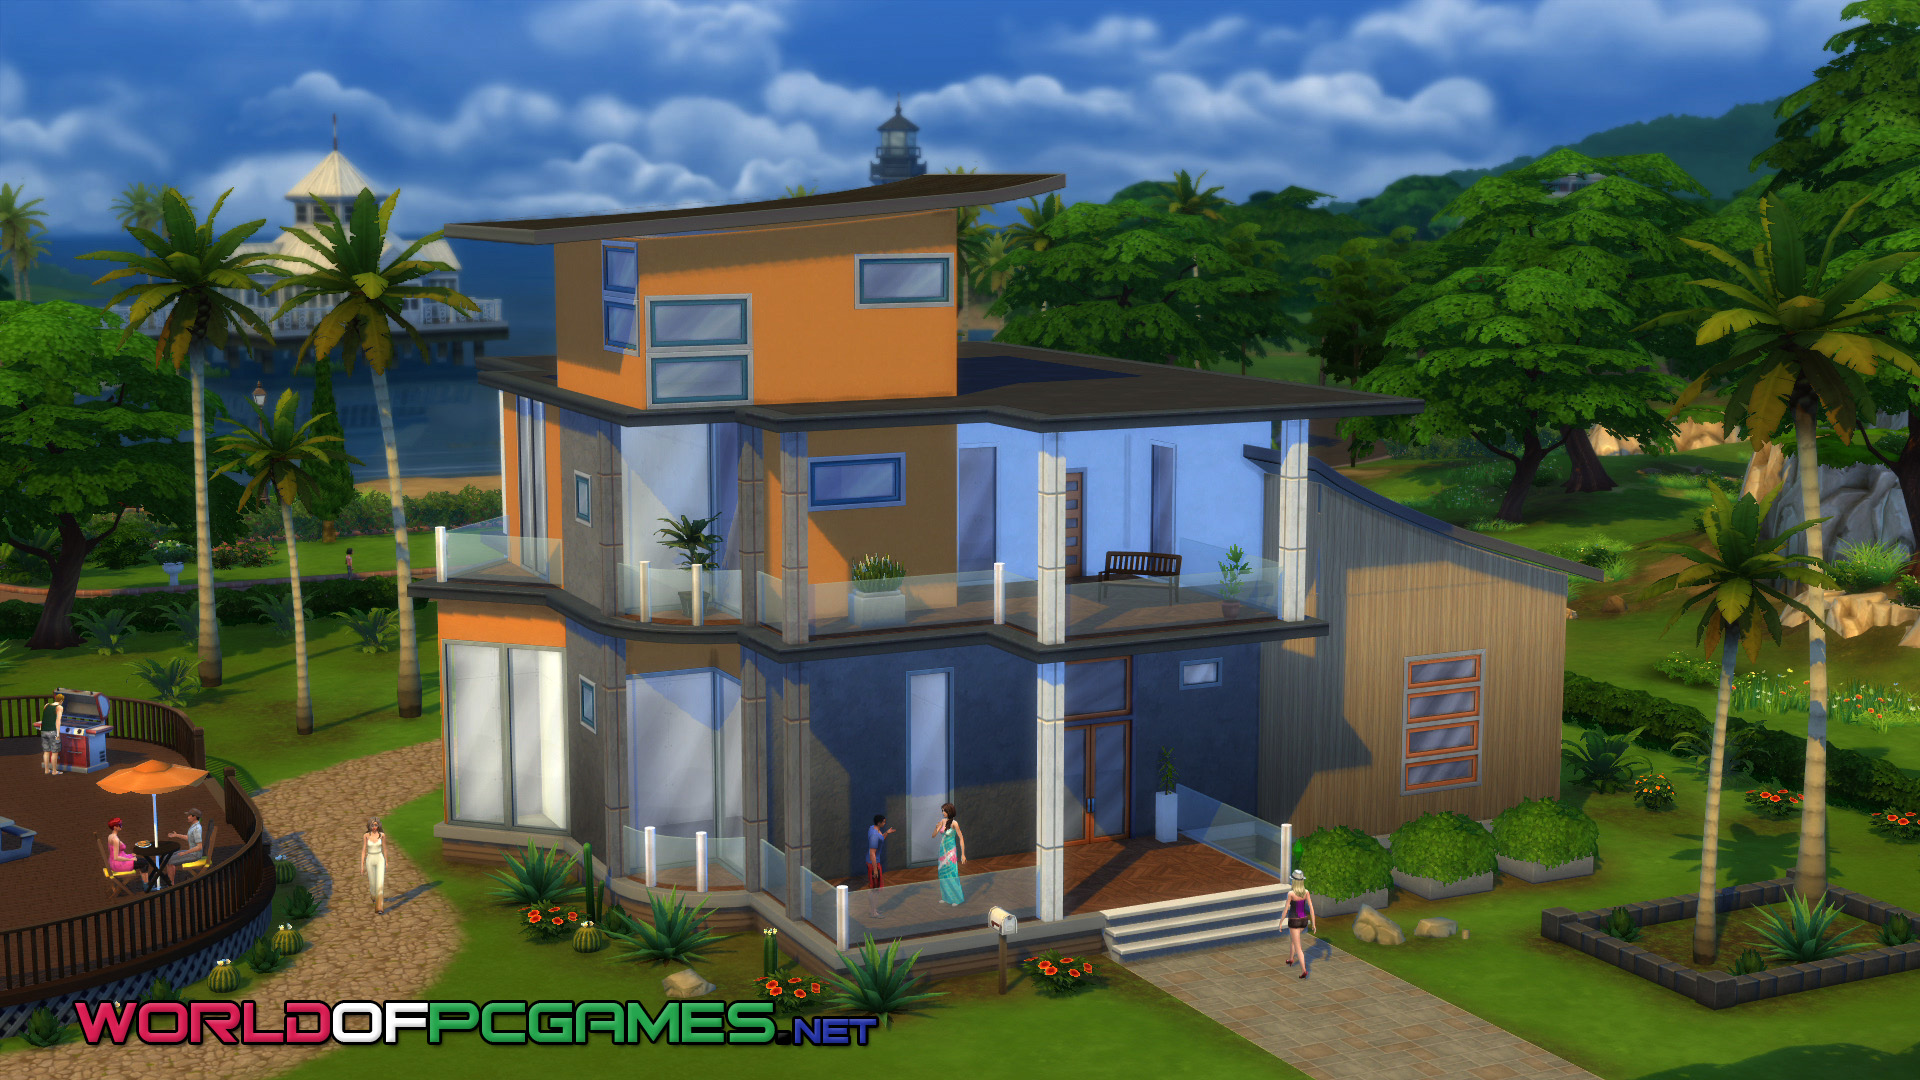 How To Download Sims 4 For Mac